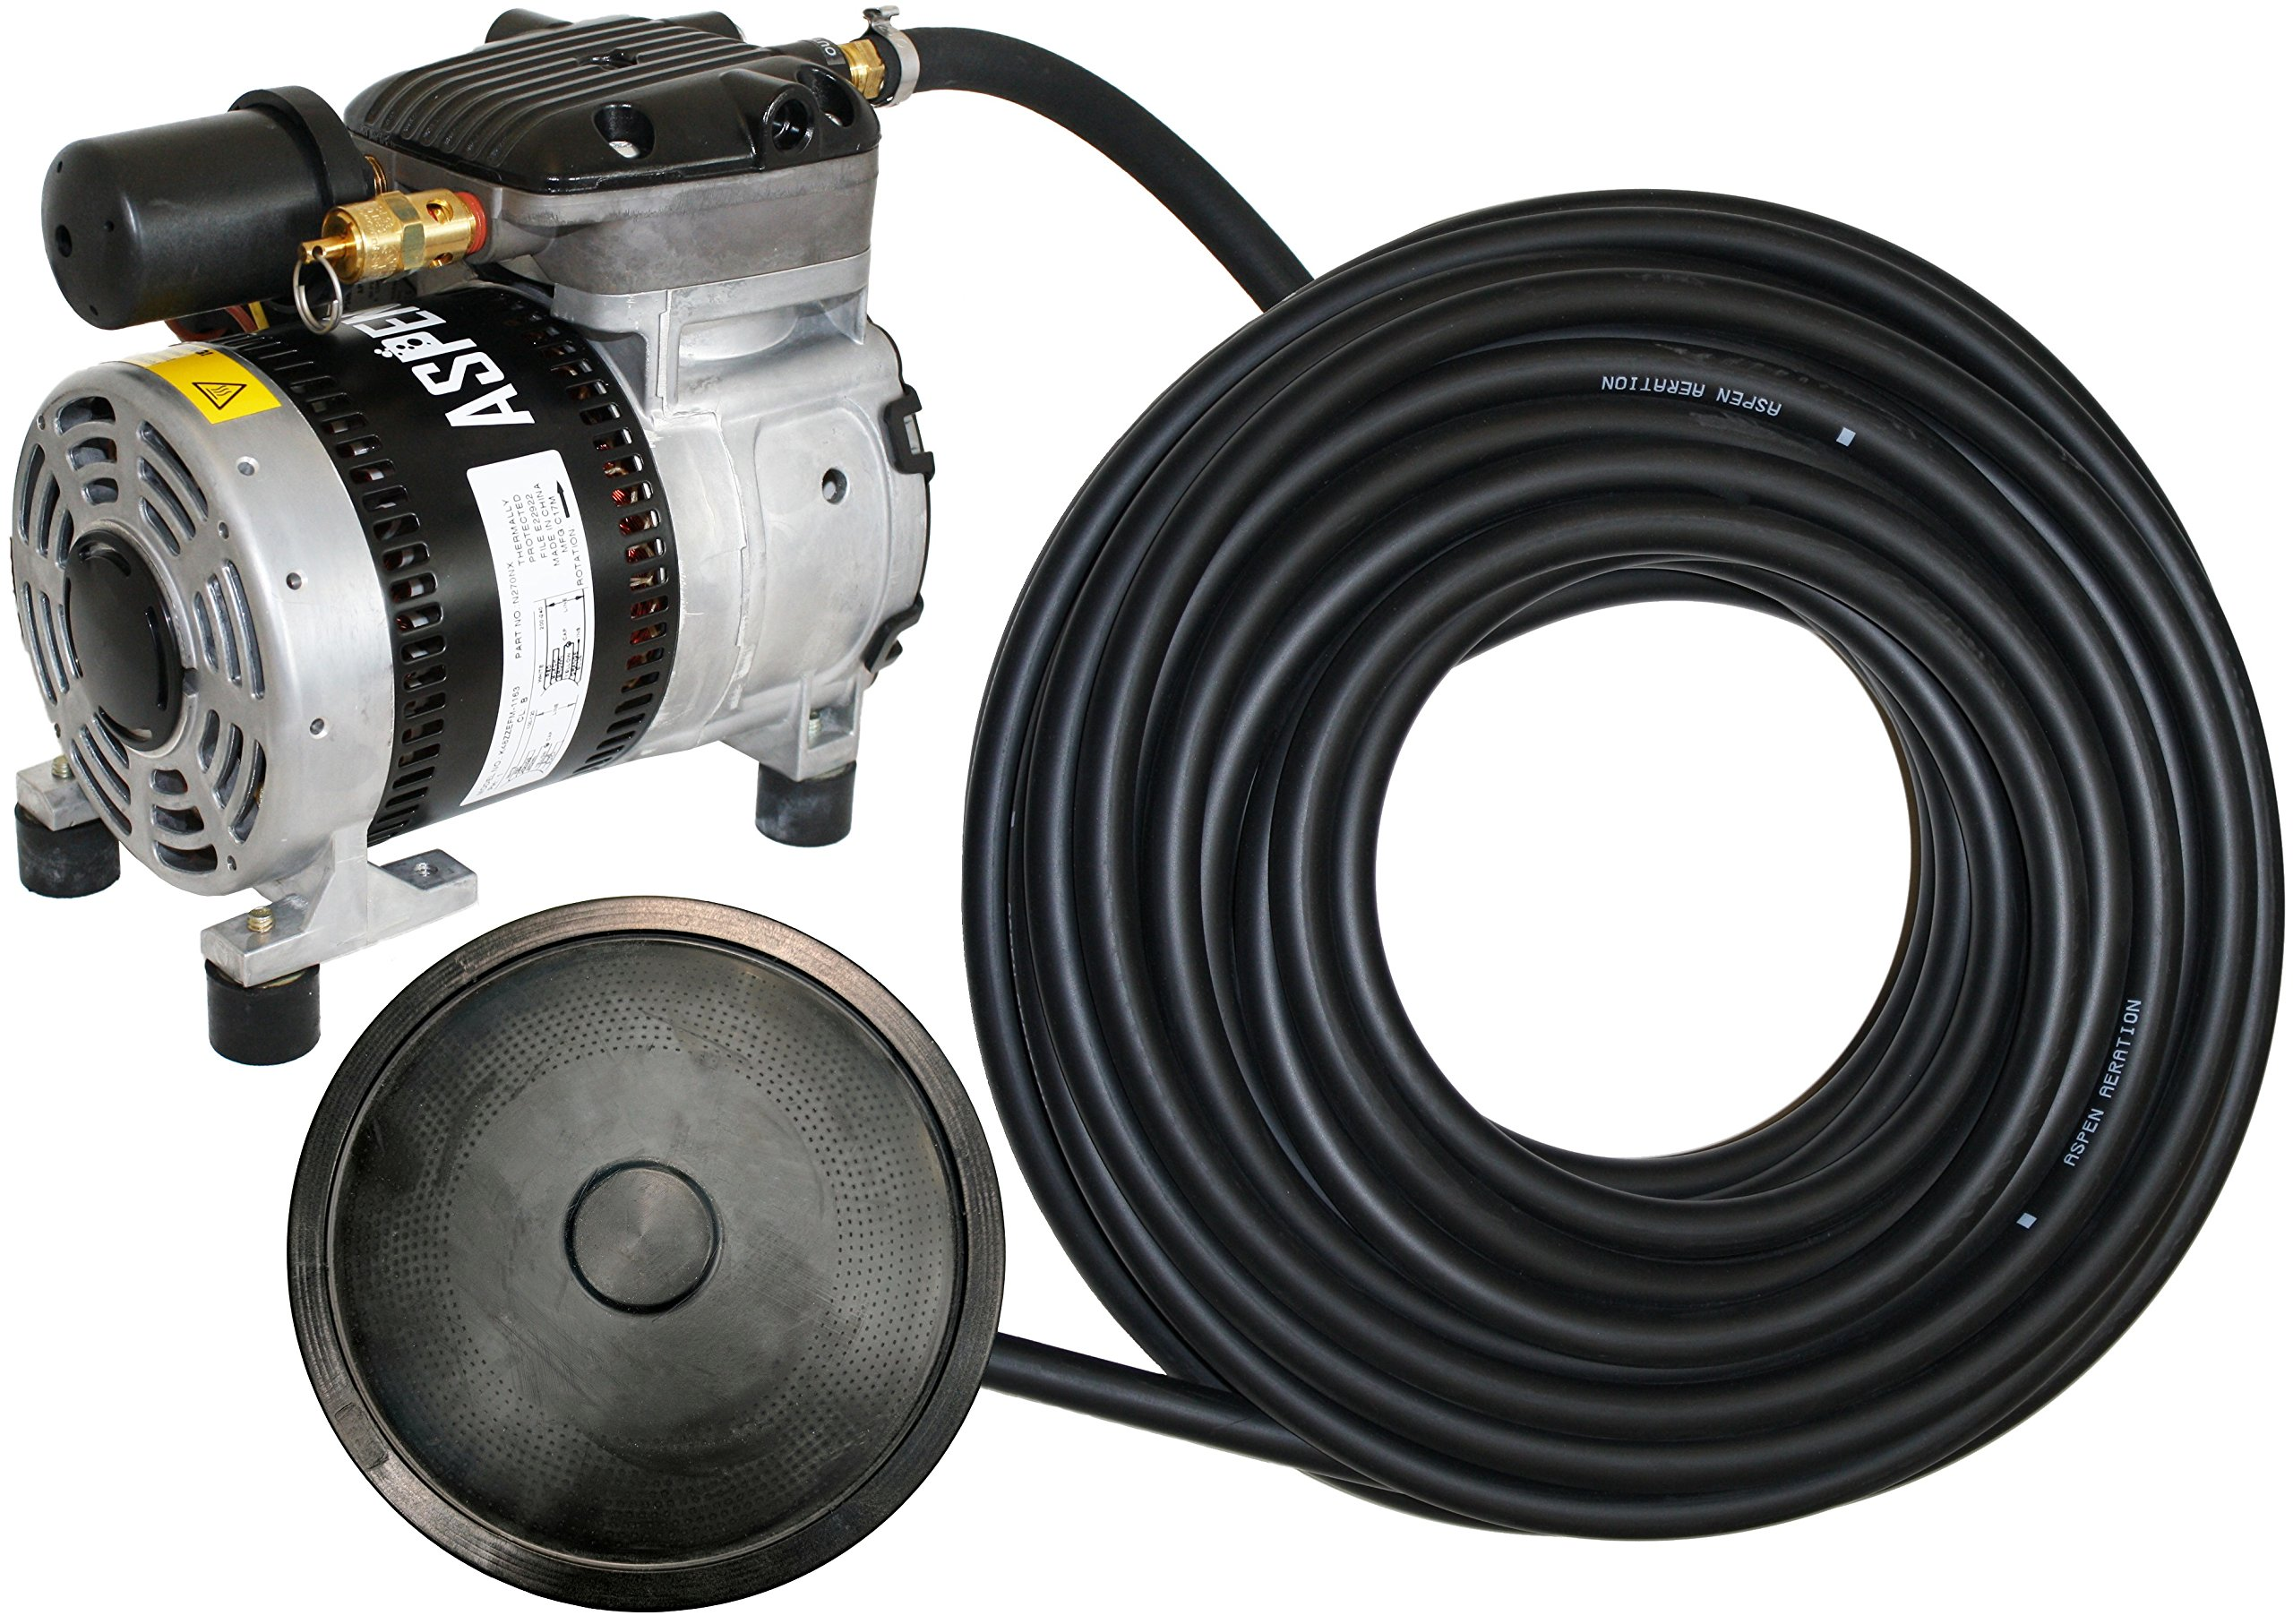 Value Pond Aeration Kit | Improve Water Quality | 1/4 Hp Rocking Piston Aerator + 100' of Weighted Tubing + Self Sink Diffuser